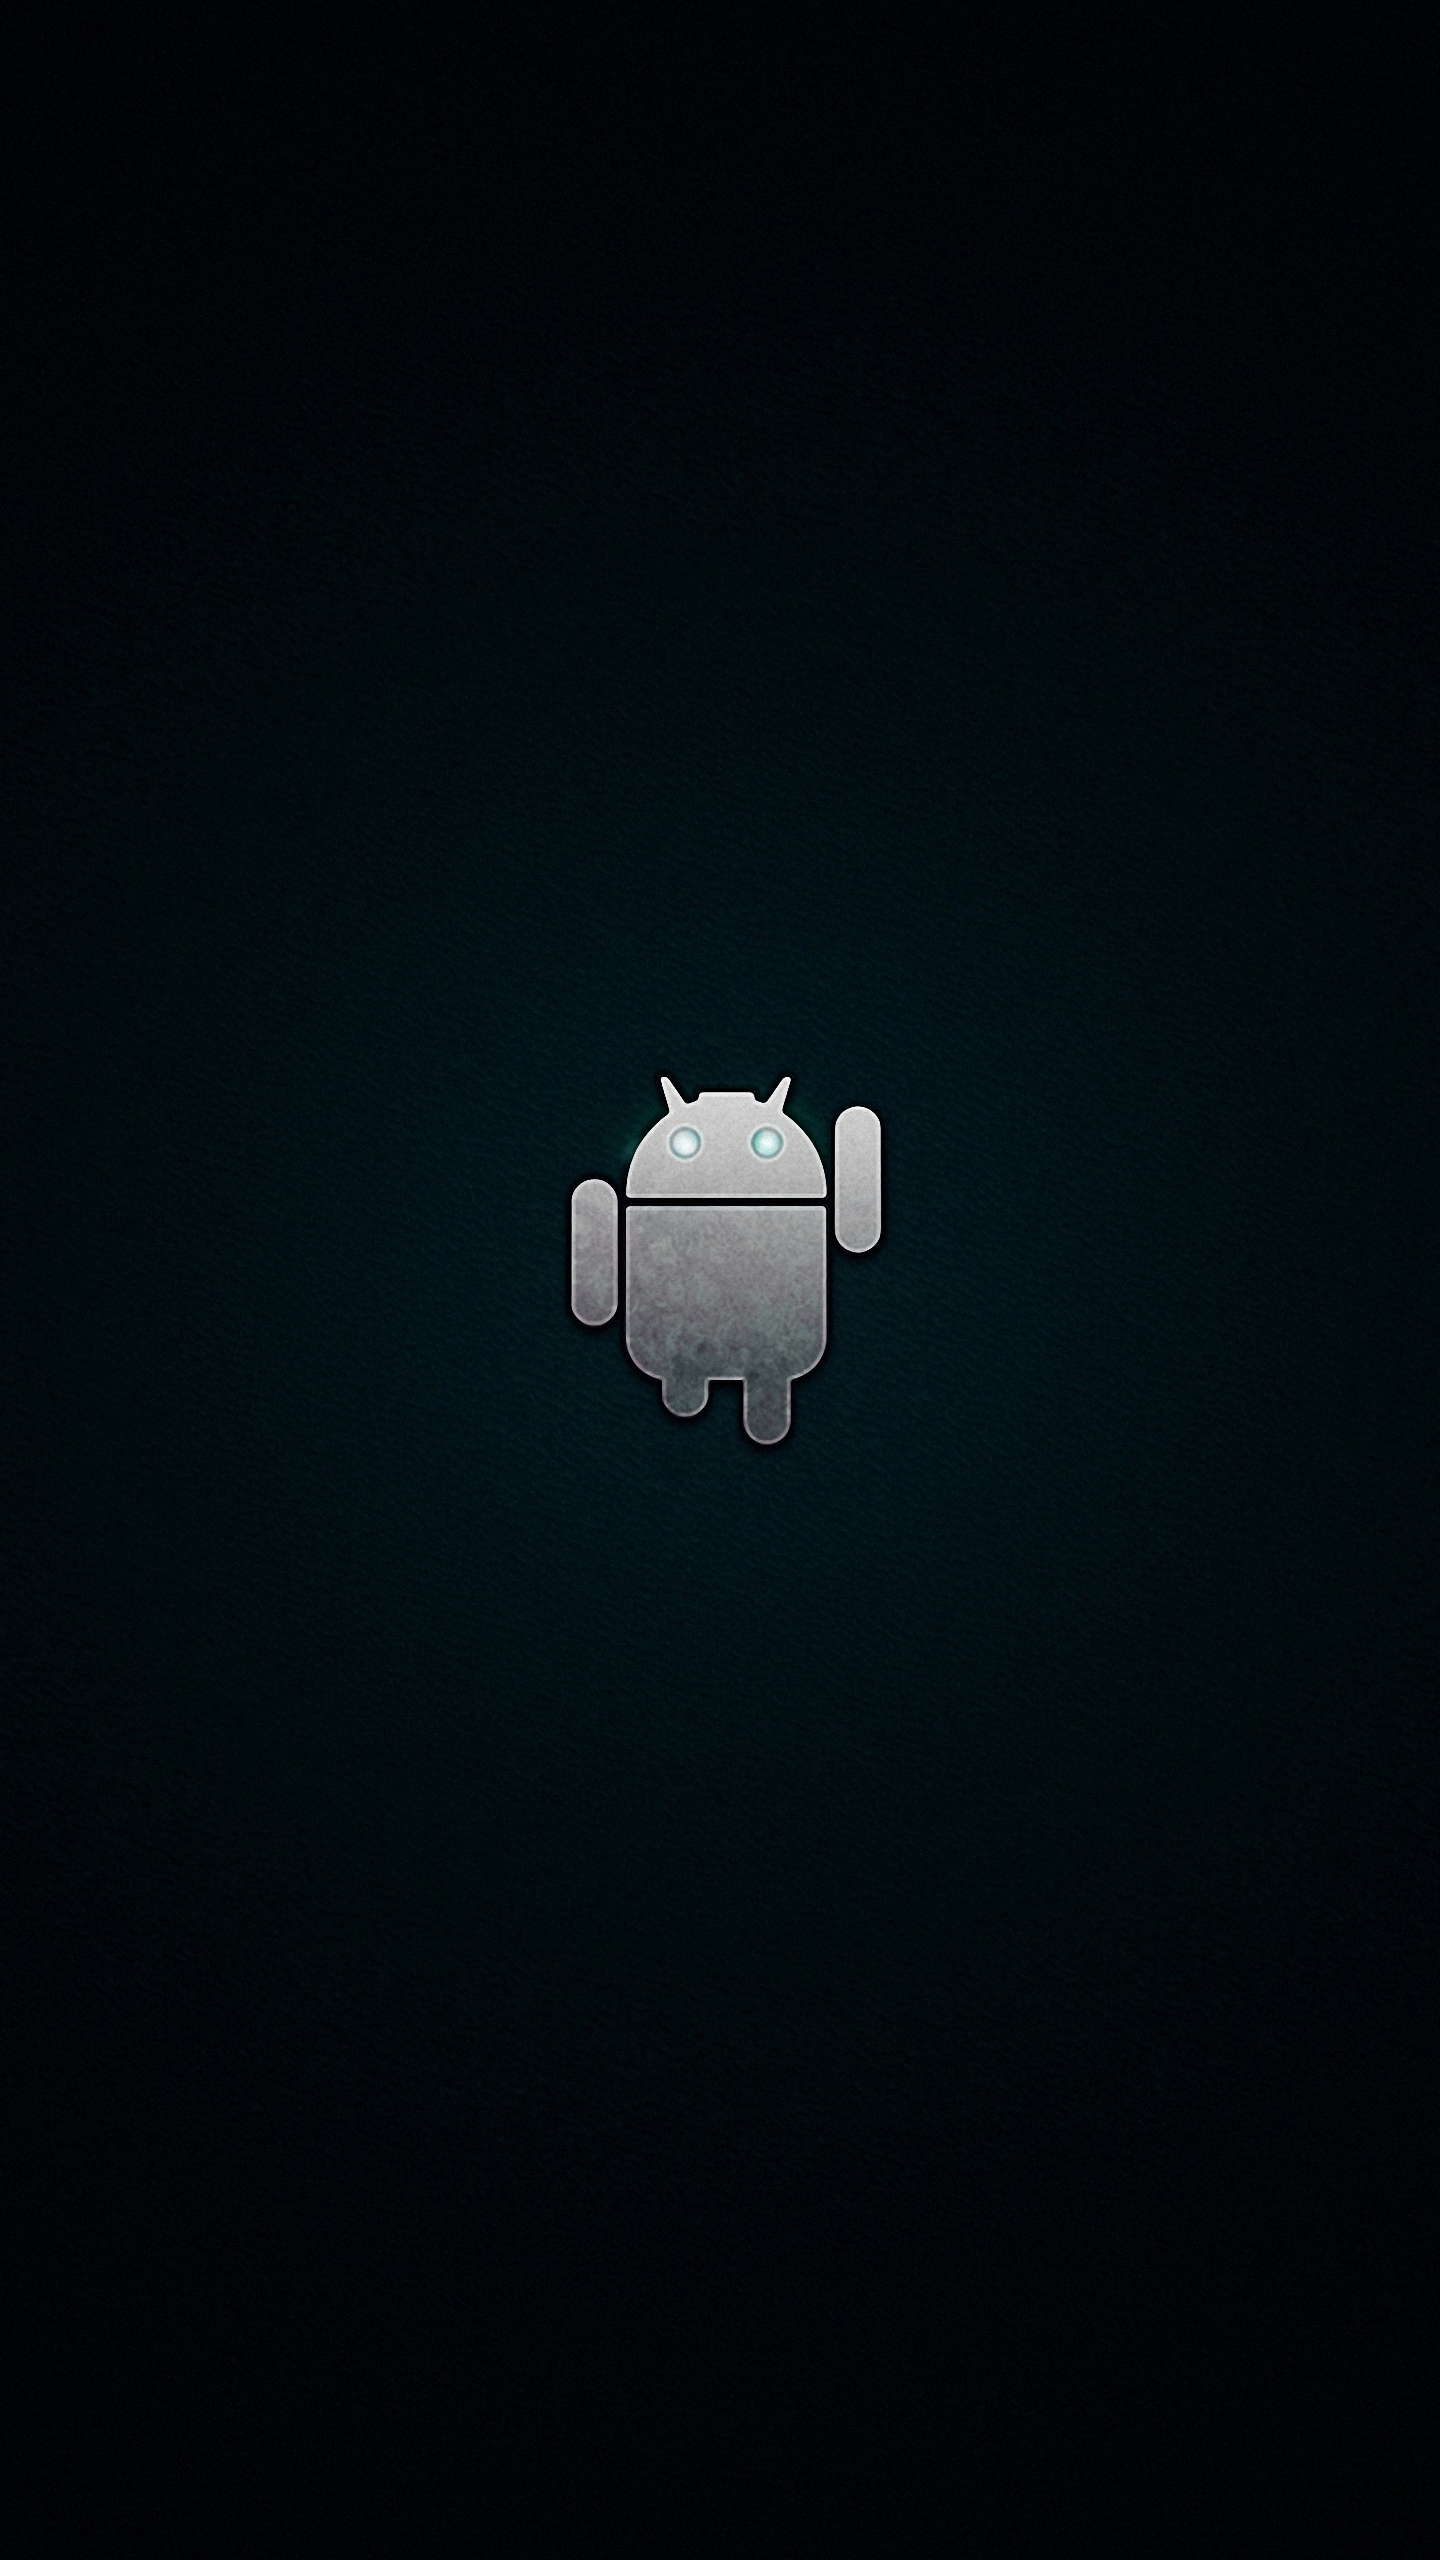 Download Simple Android Wallpaper Gallery